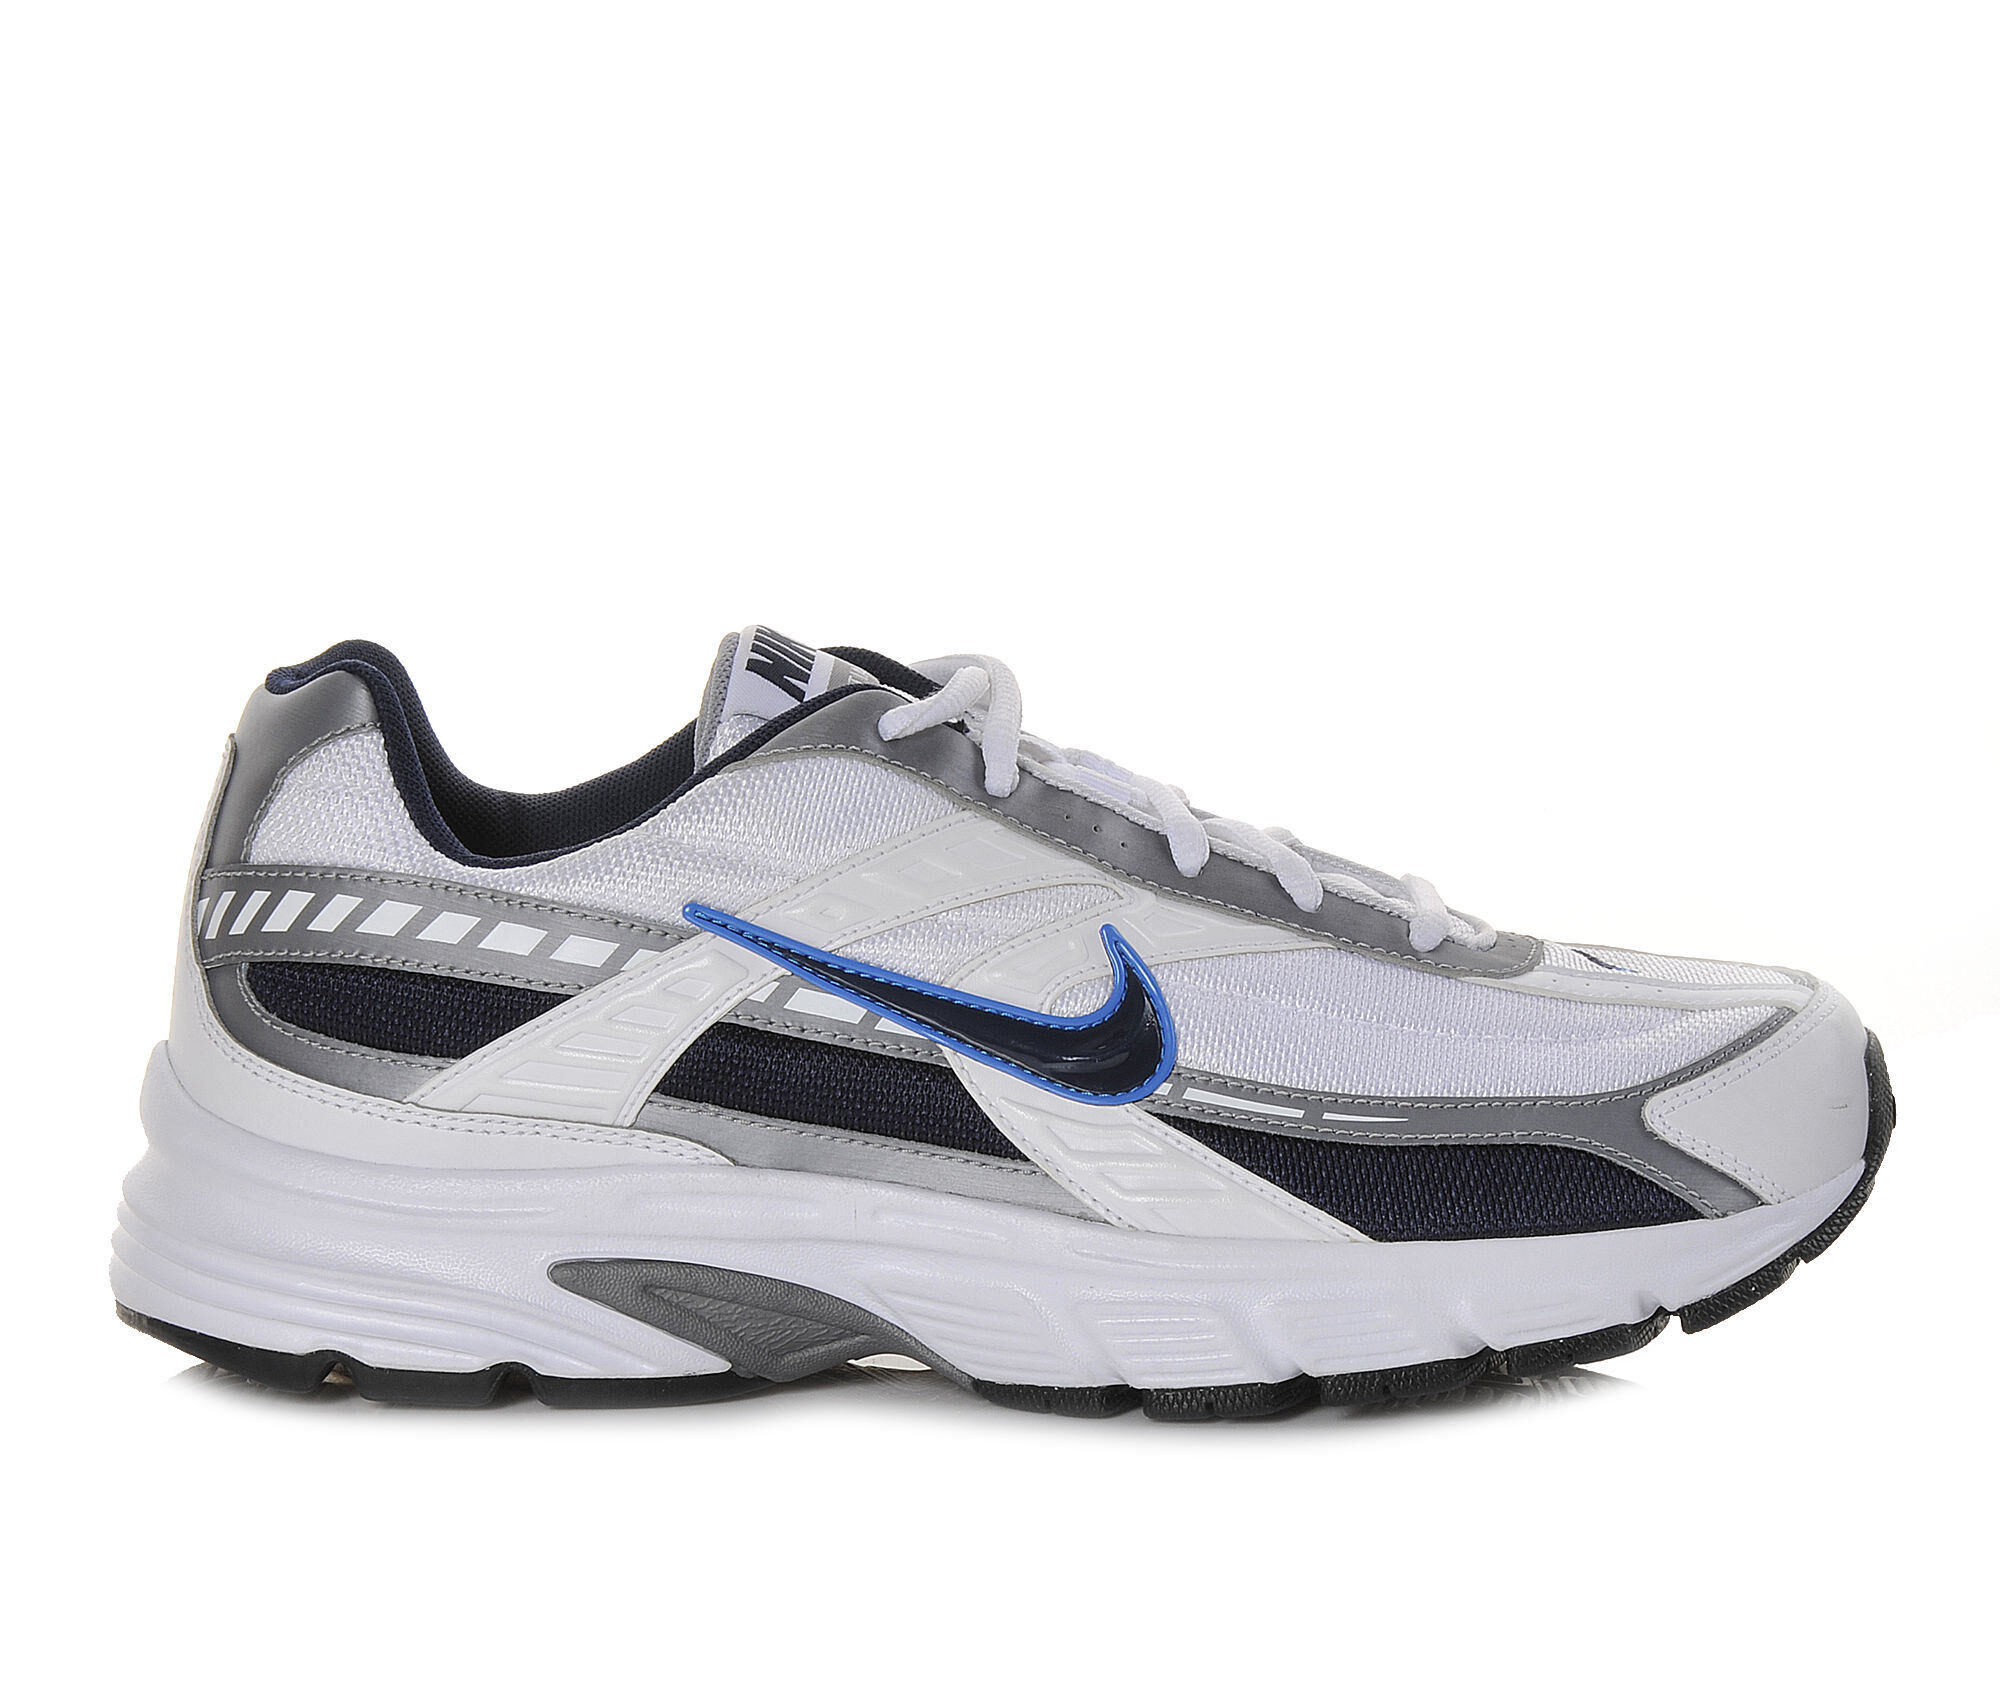 nike shoes size 6 width eee means in engineering 845013